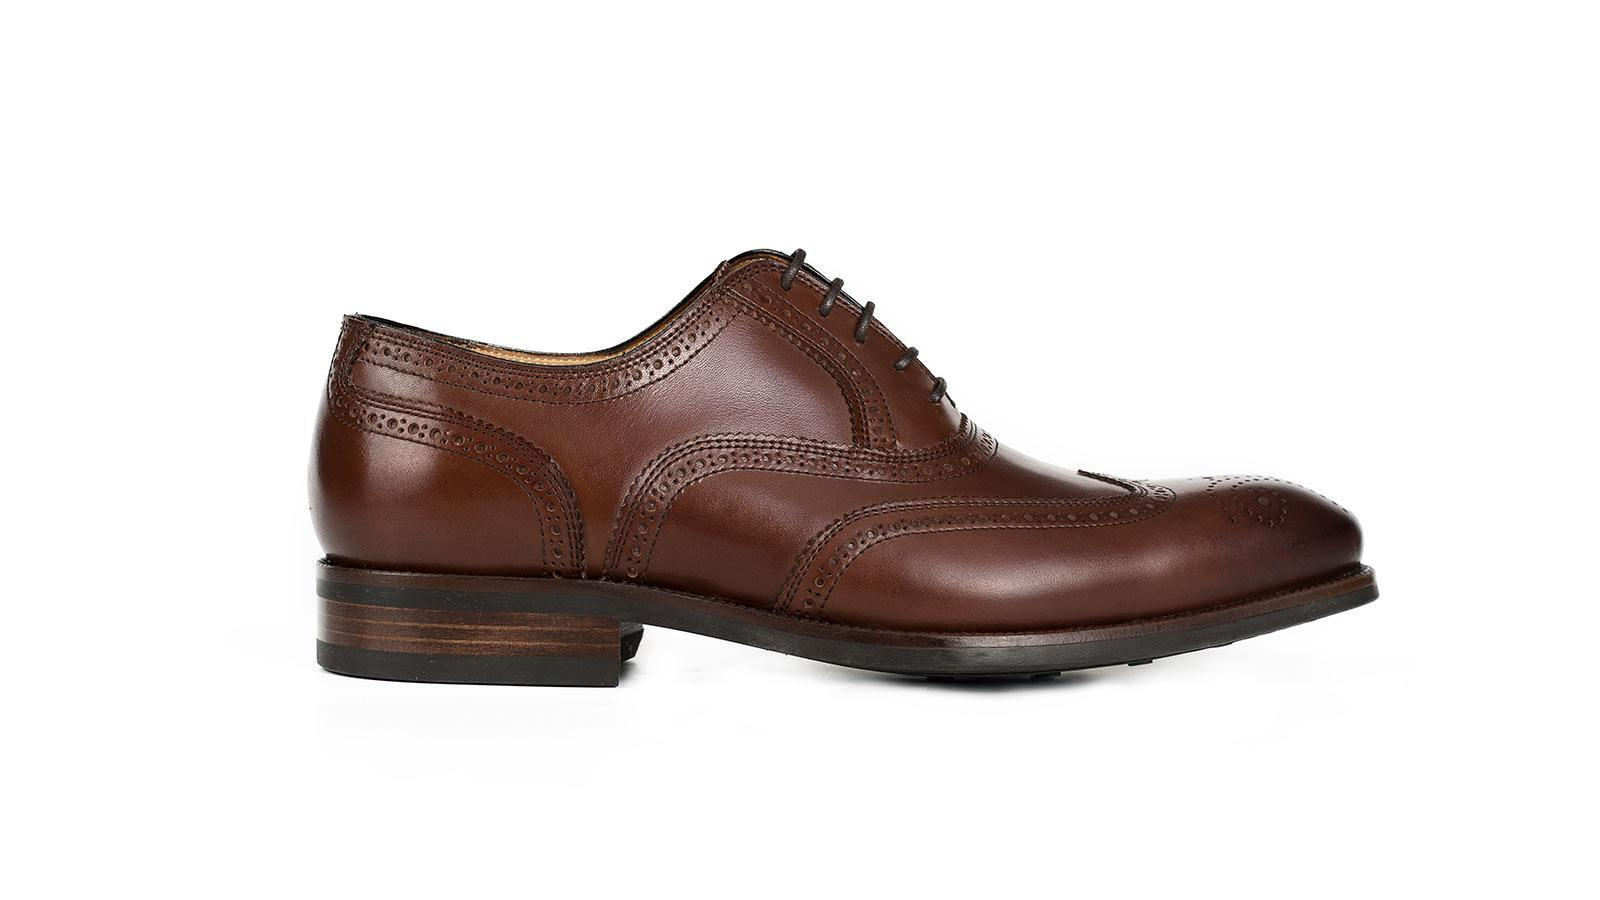 Walnut Wingtip Oxford with a Rubber Sole - slider image 1